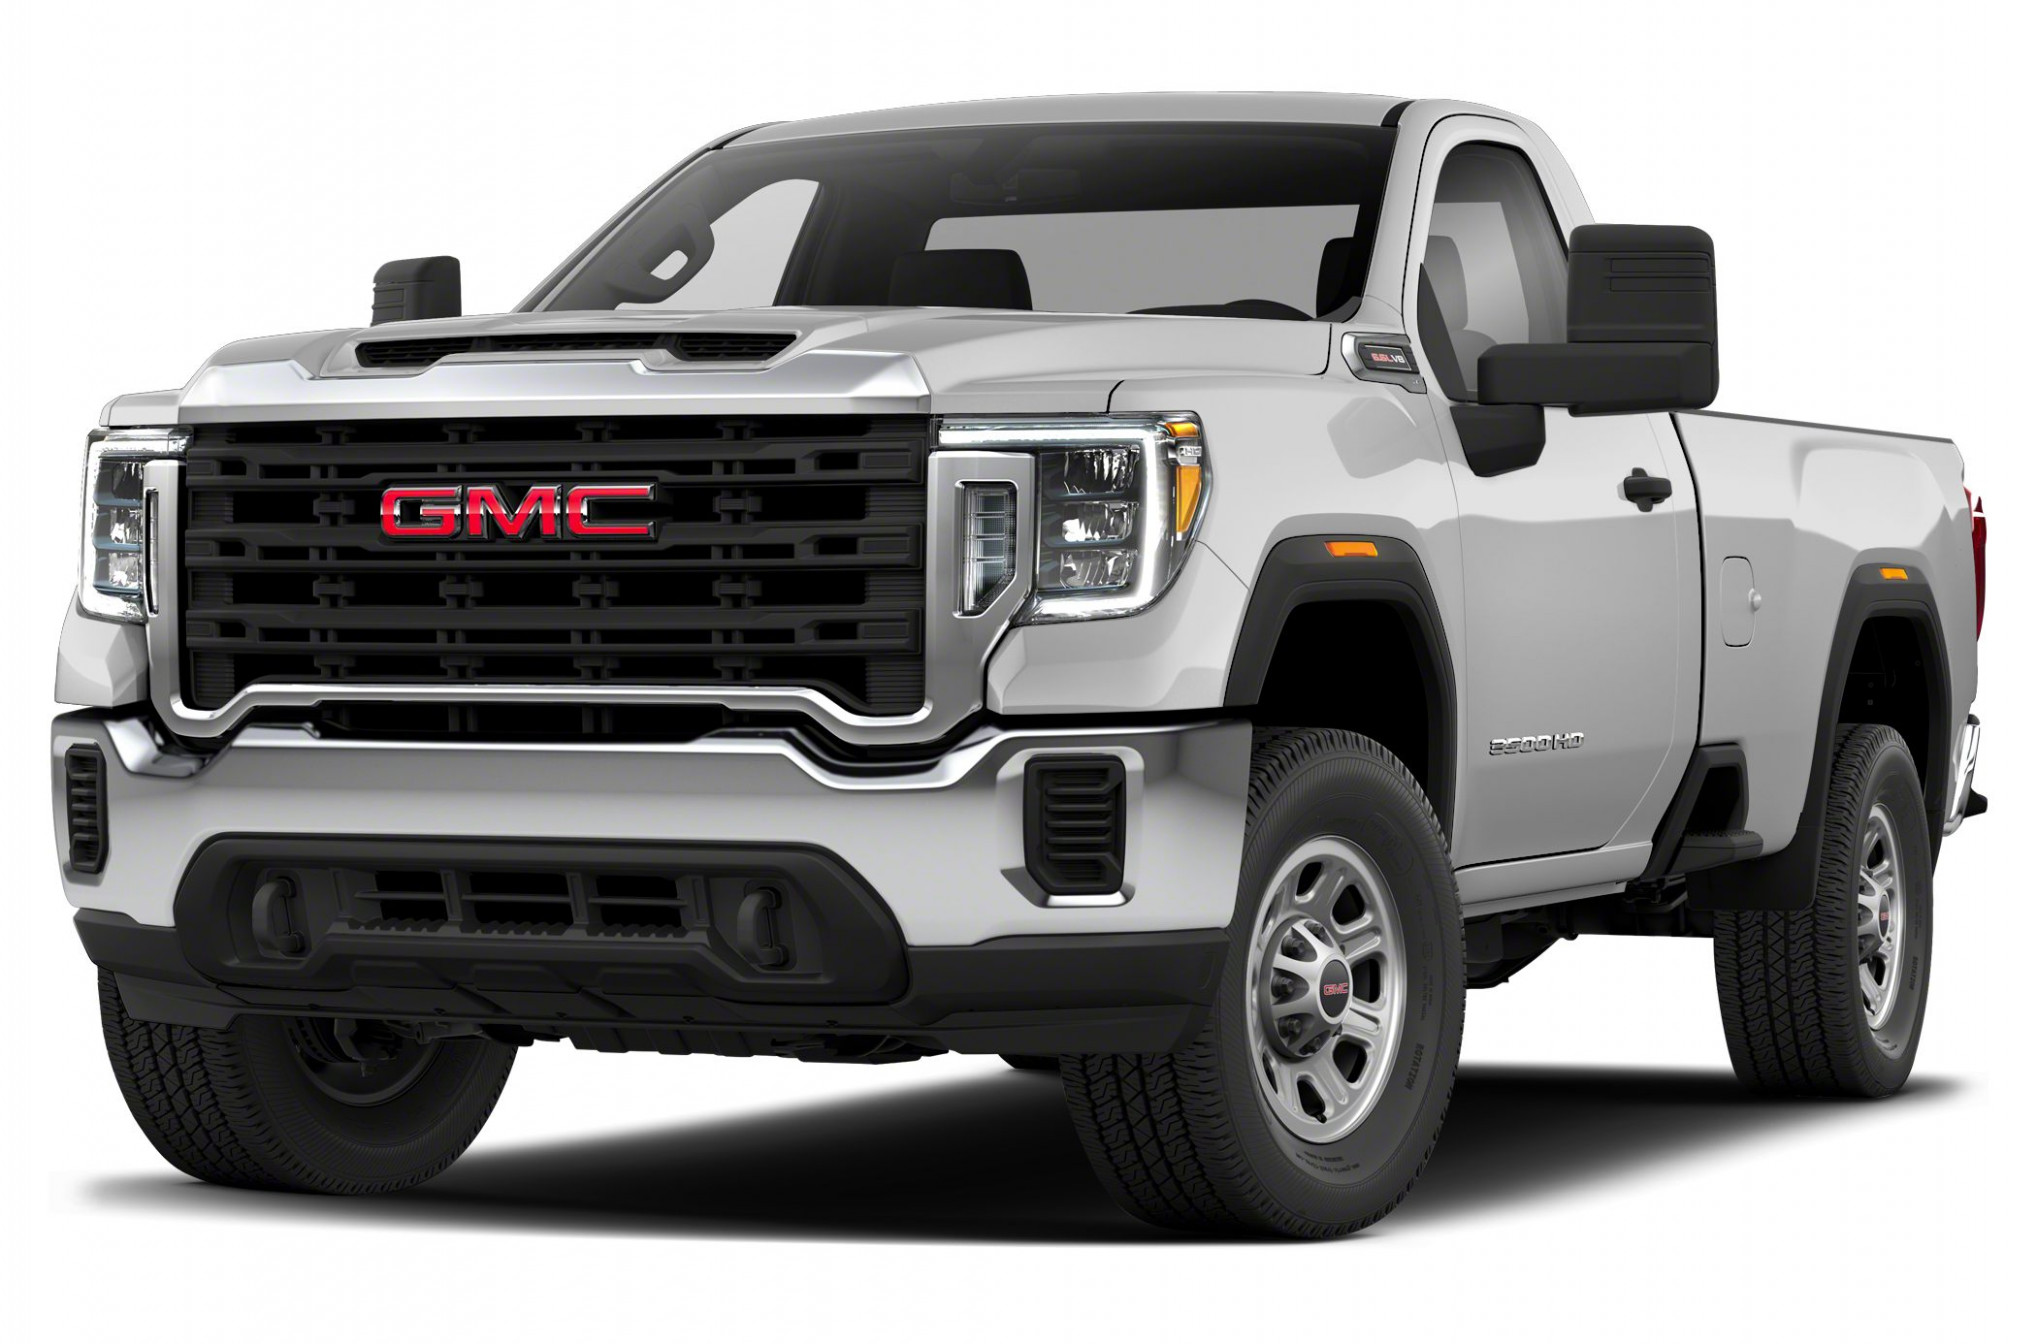 8 GMC Sierra 8HD Rebates and Incentives - gmc rebates 2020 sierra